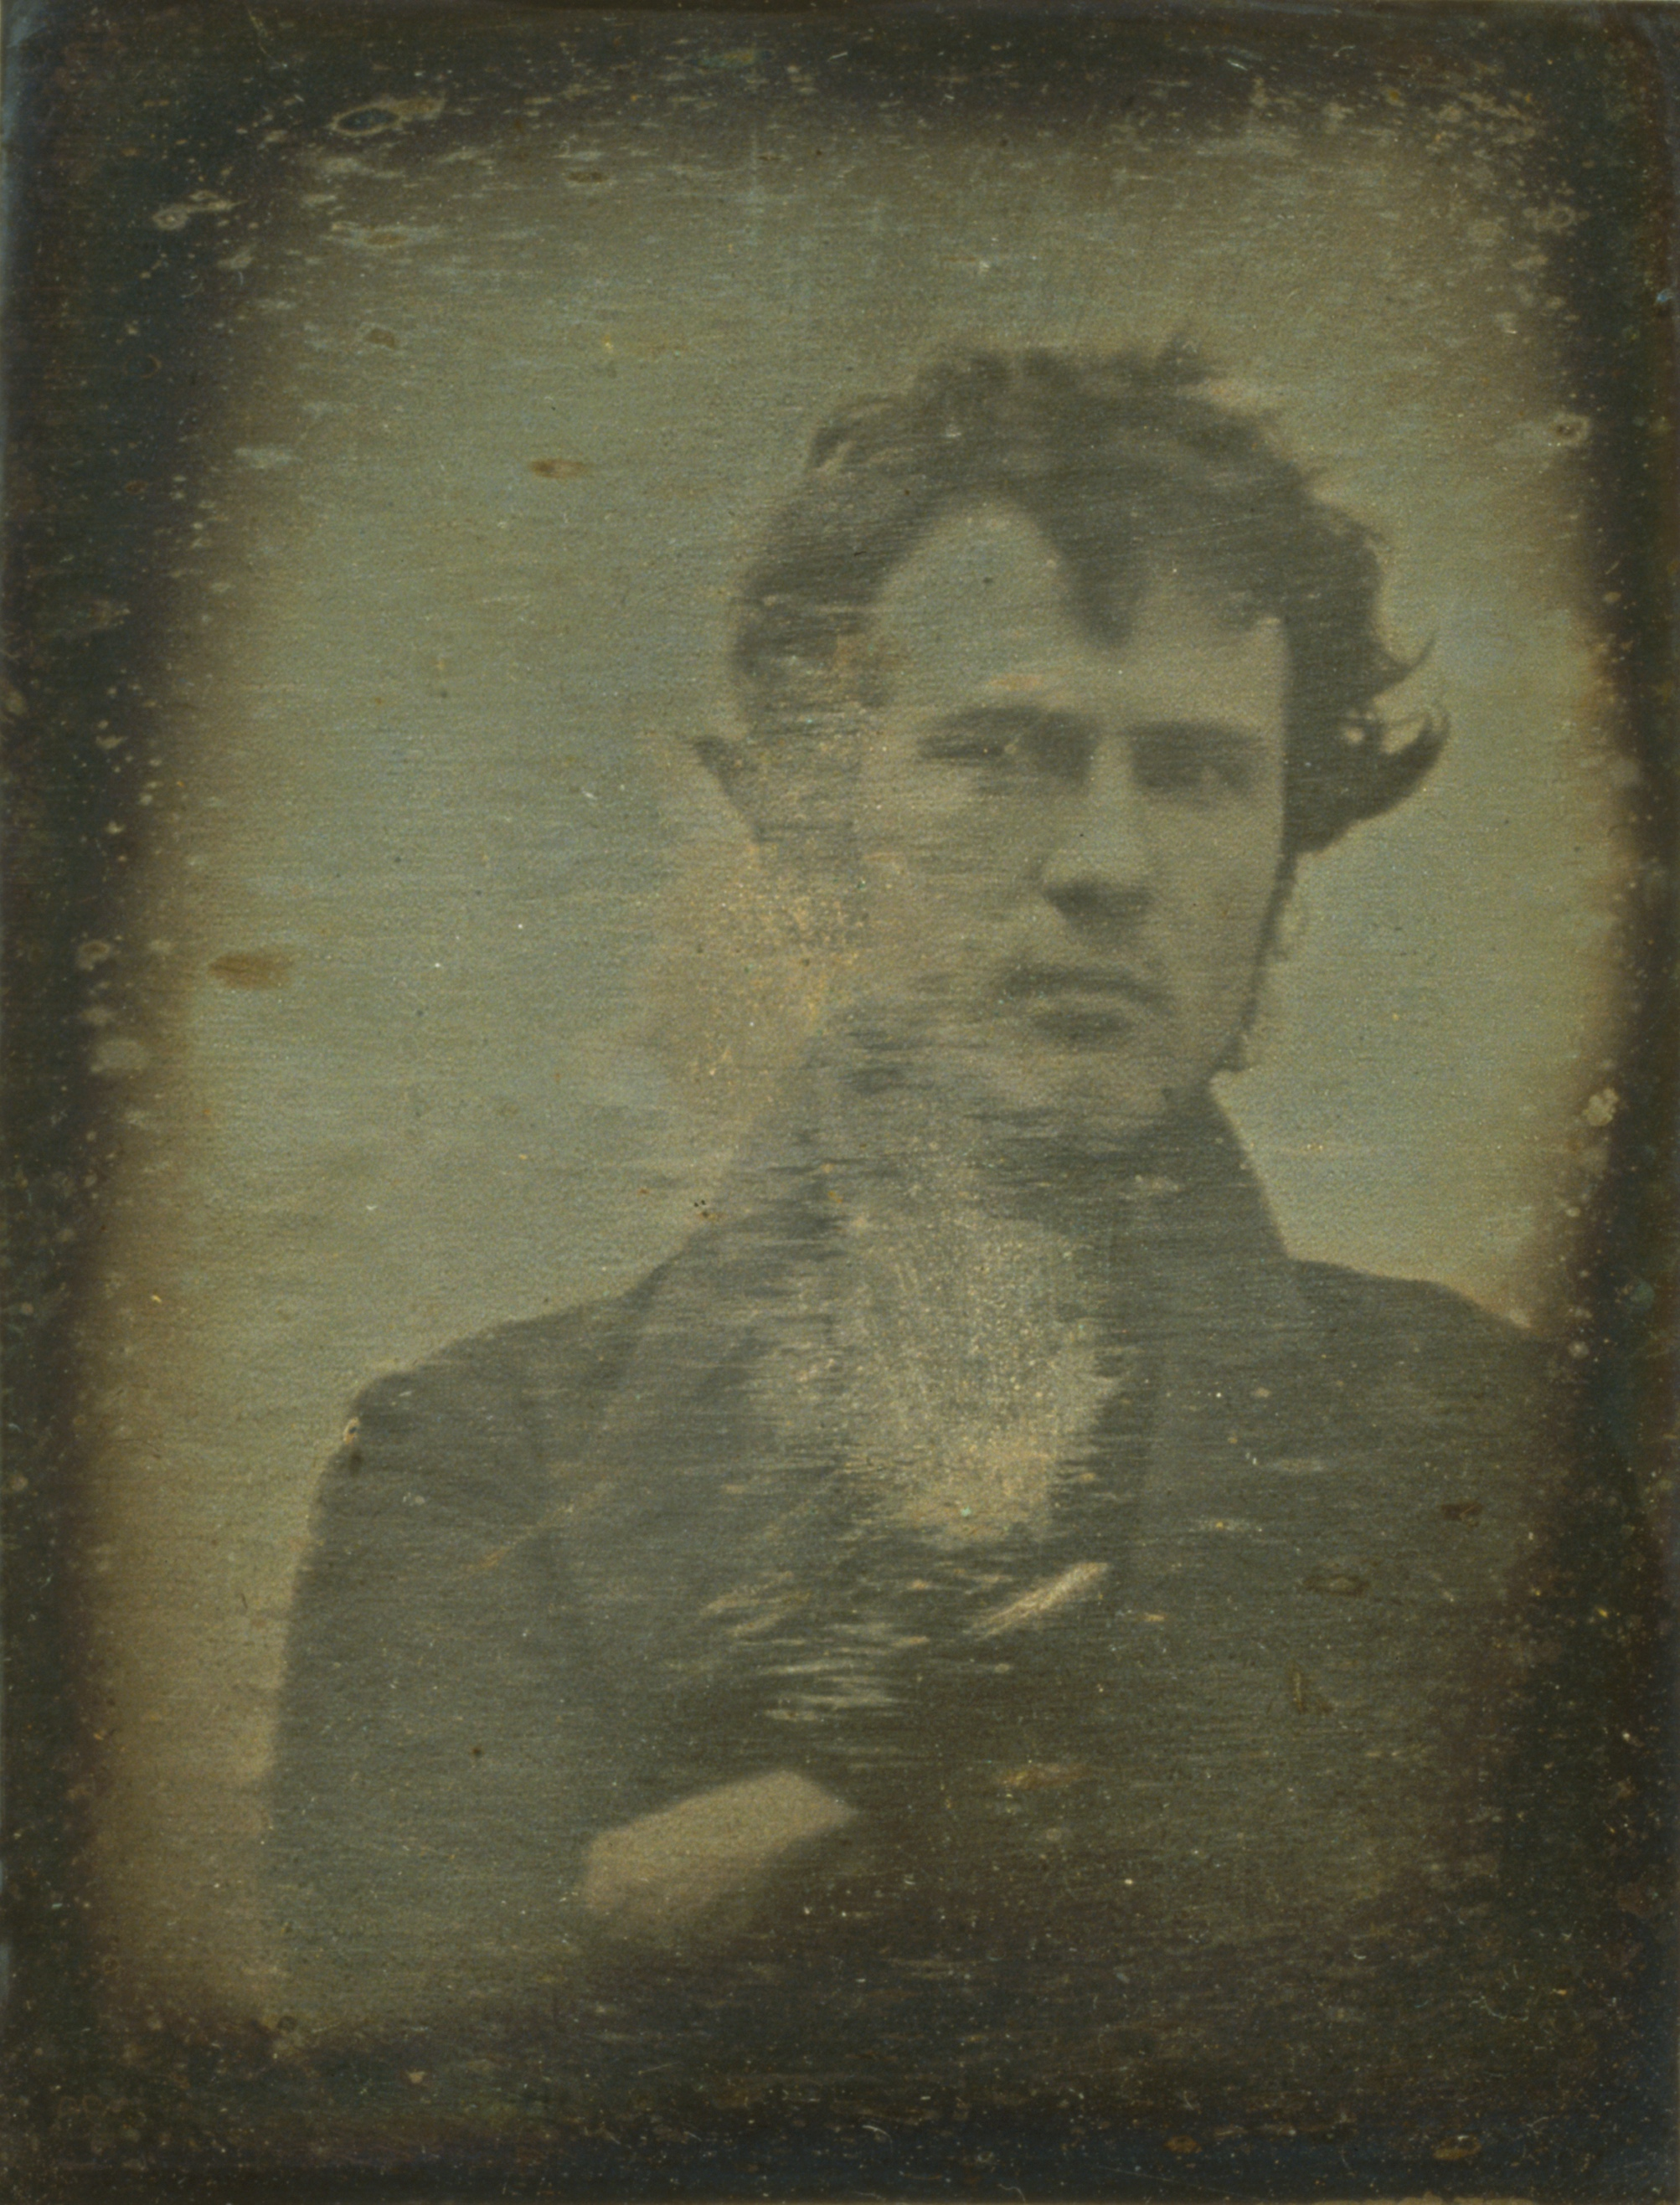 "See The First ""Selfie"" In History Taken by Robert Cornelius, a Philadelphia Chemist, in 1839"